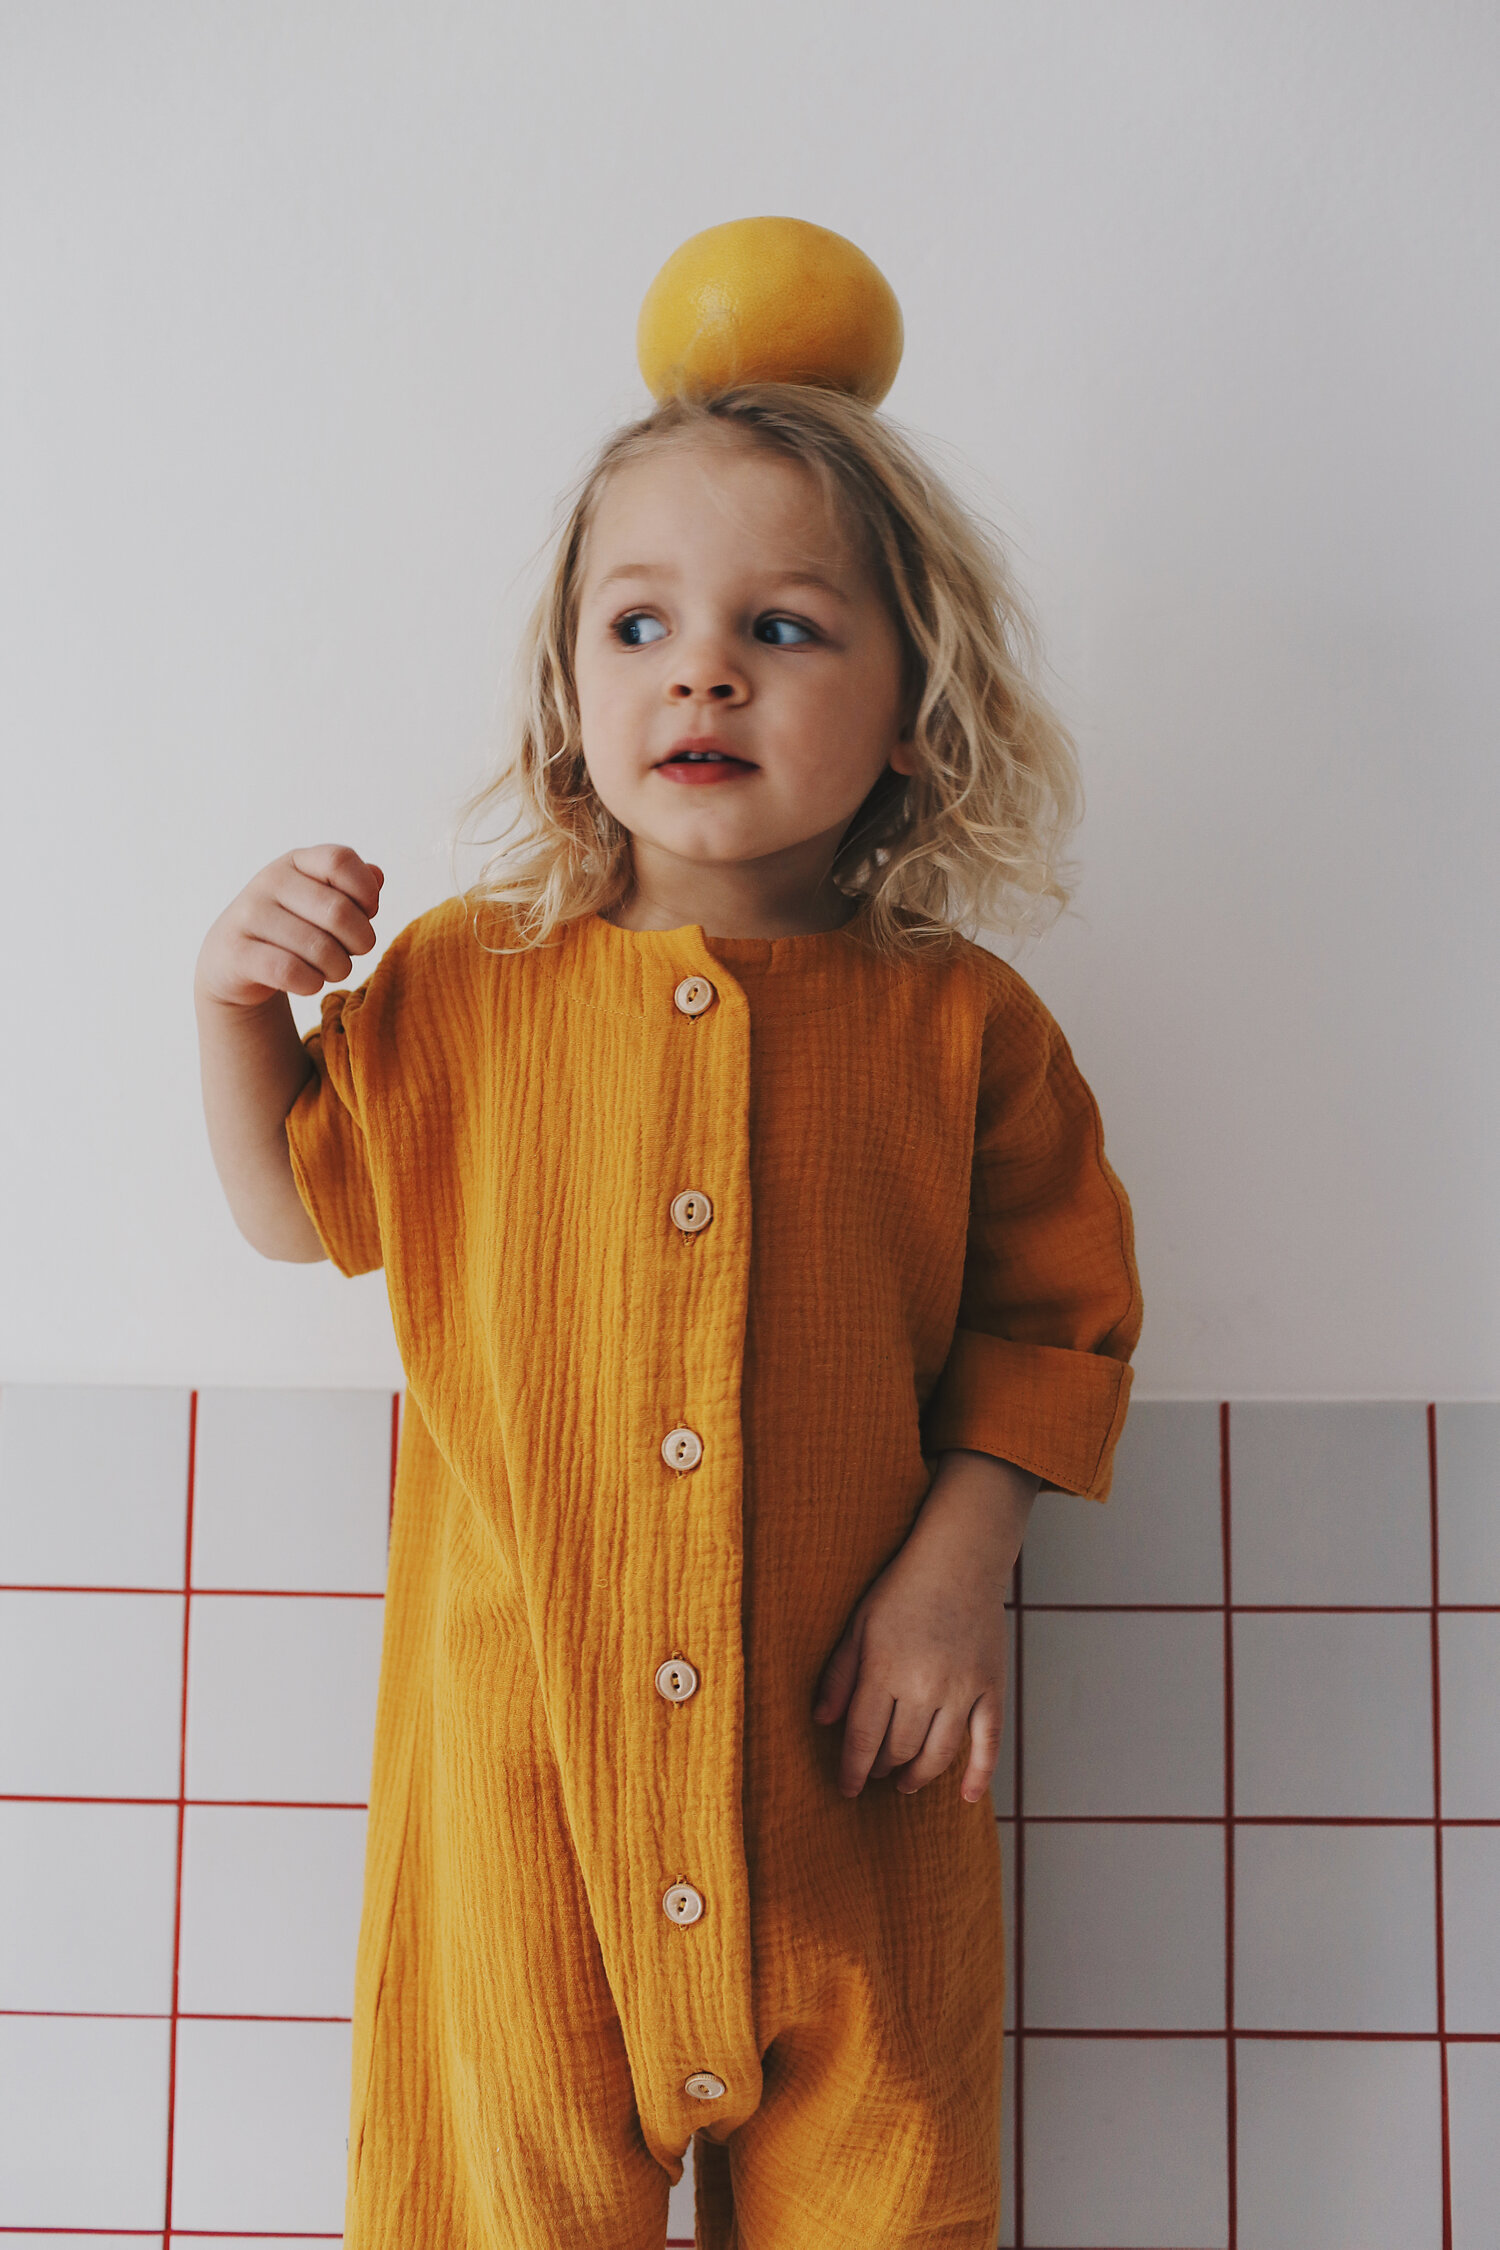 Cacane: Simple, Timeless Looks for Children